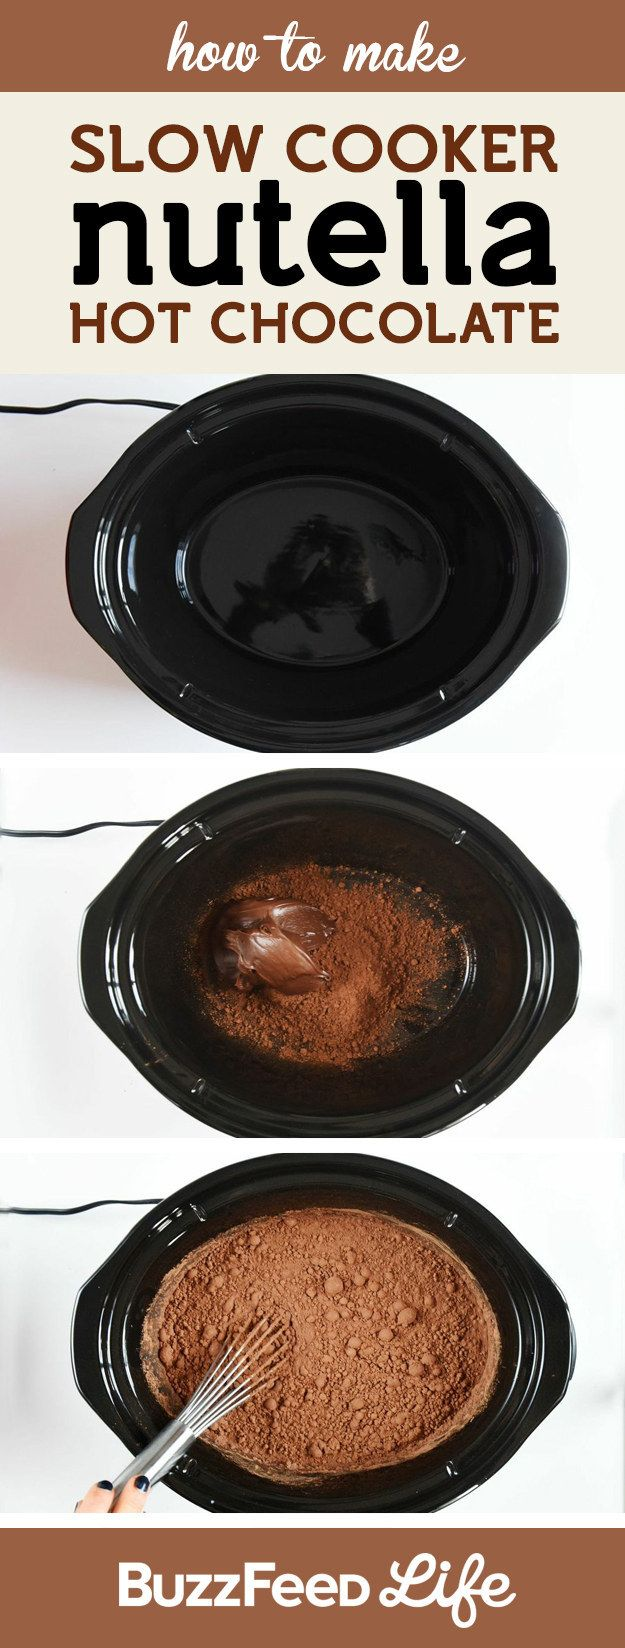 Combine cocoa powder, Nutella, and milk in a slow cooker, and cook for two hours on low: | These Easy and Inexpensive Nutella Desserts Are All You Need In Life